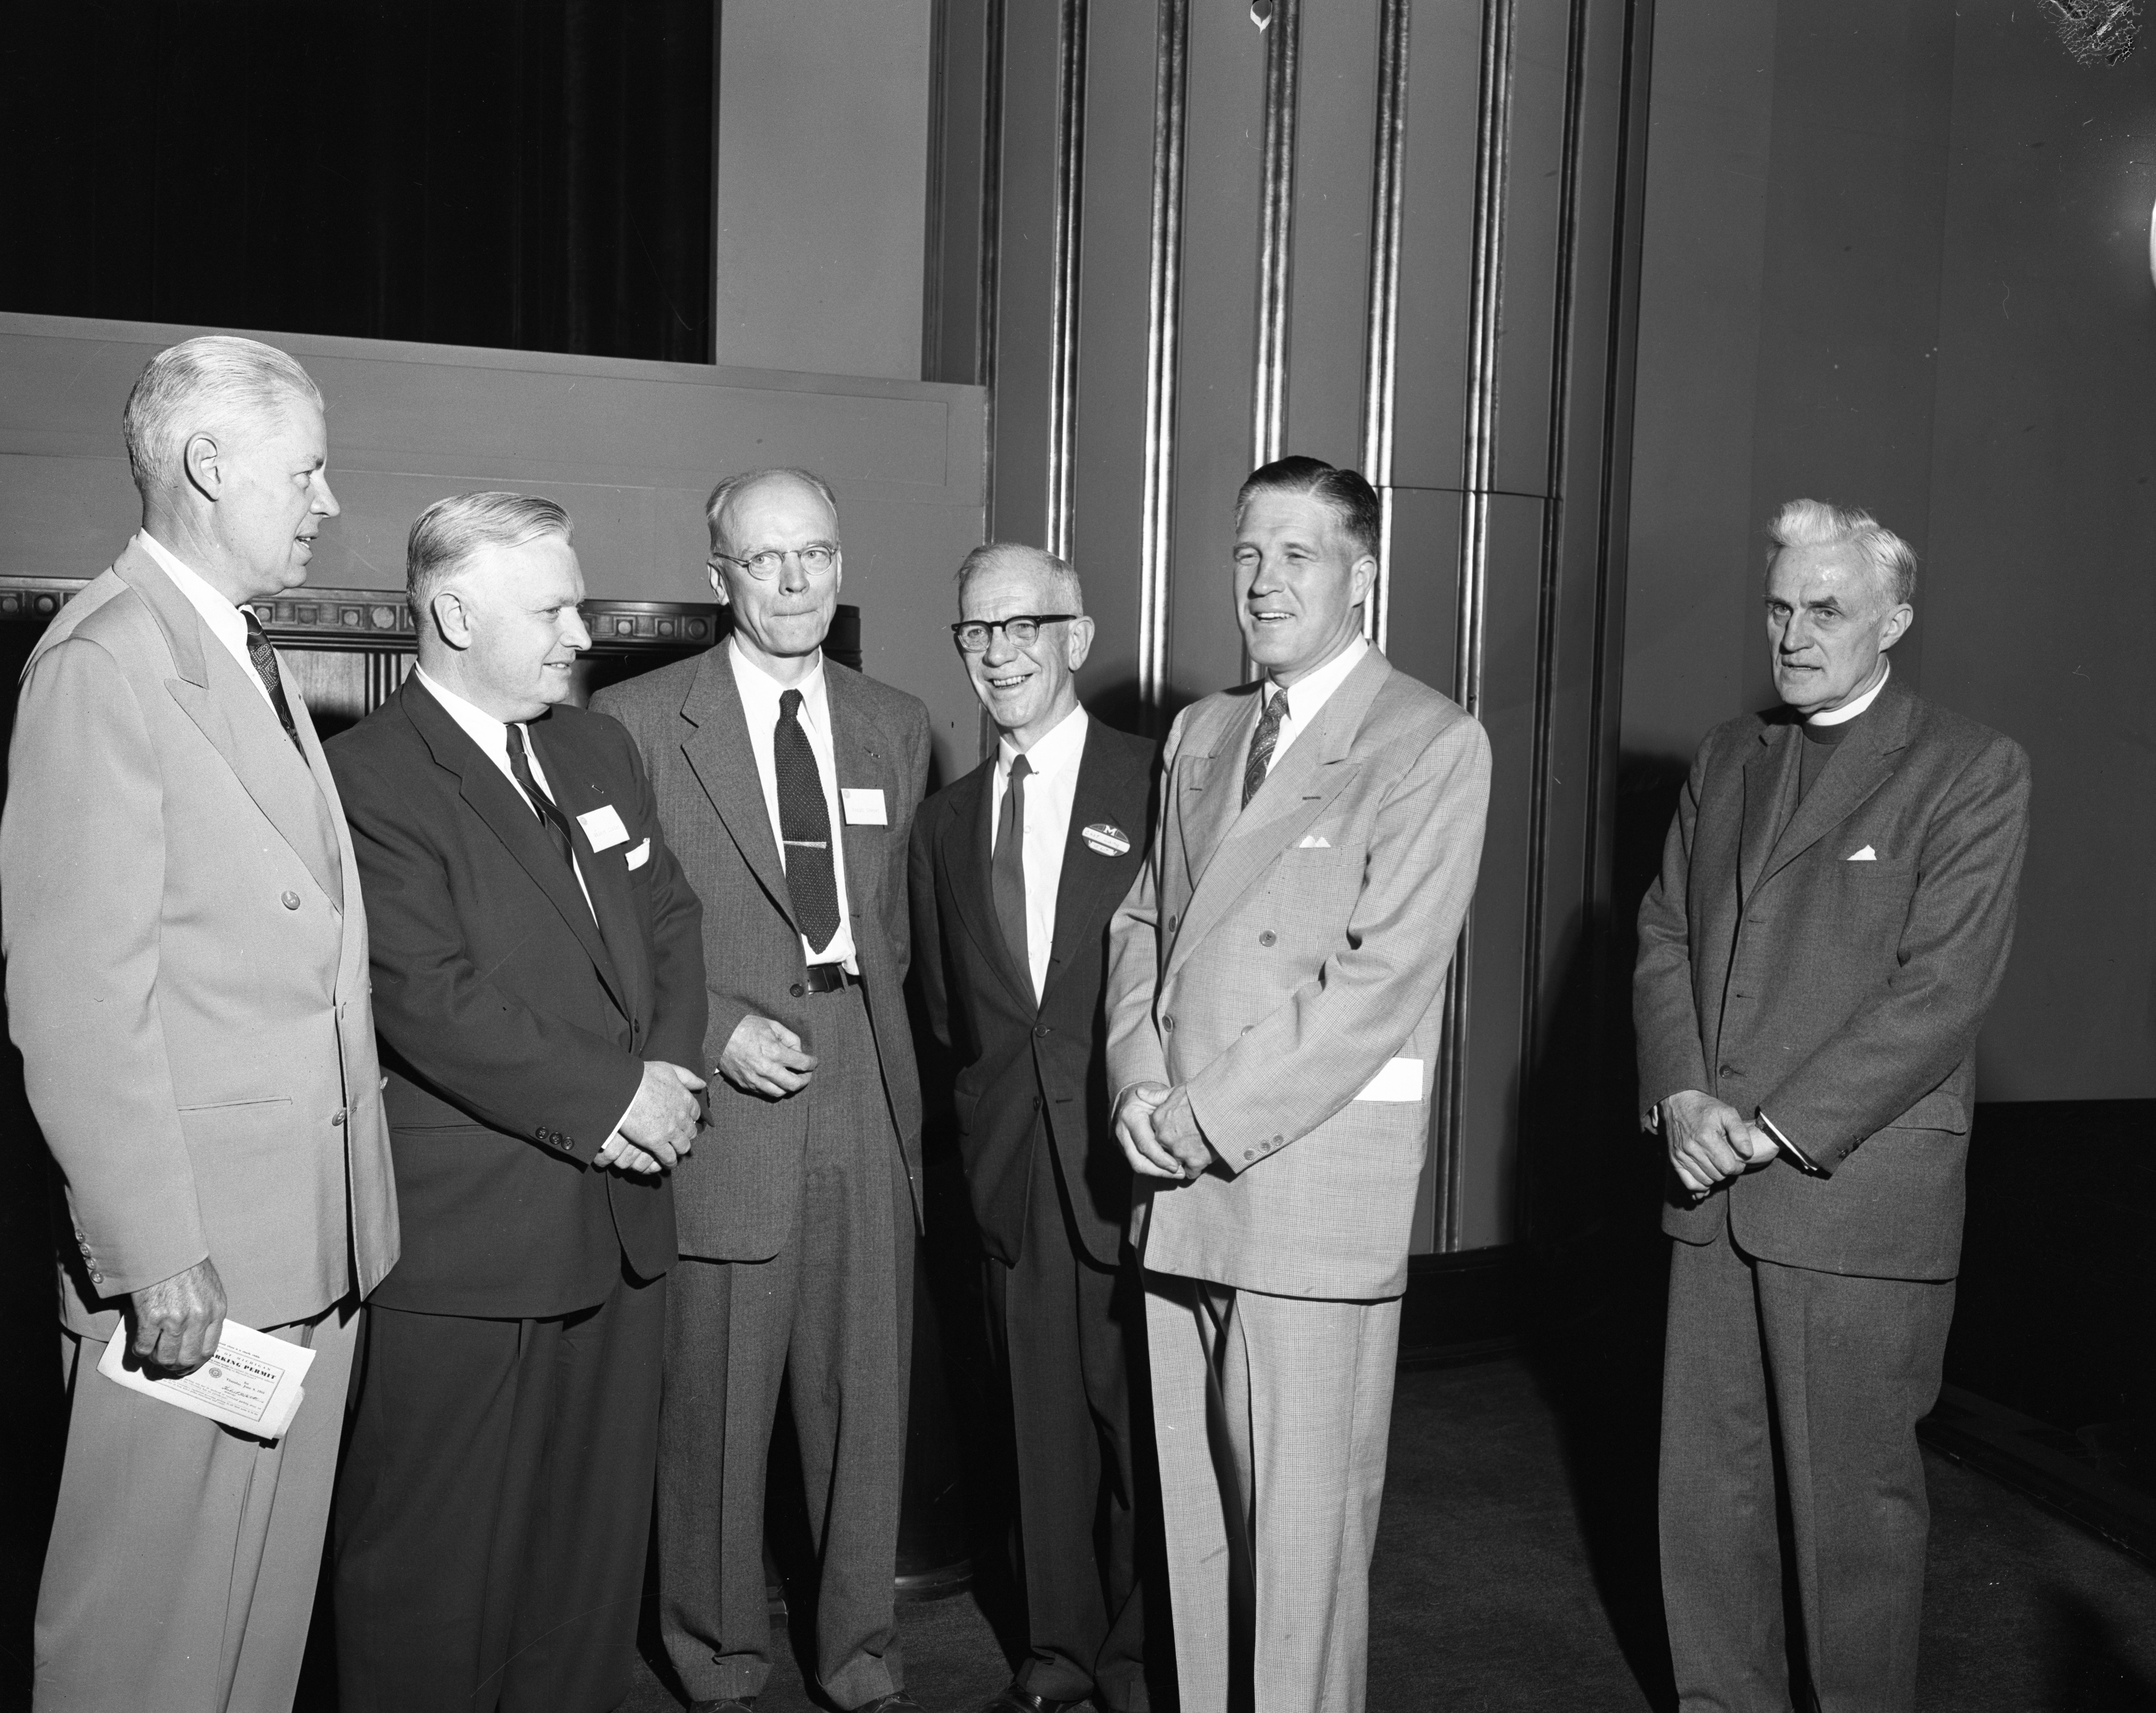 Dignitaries at the dedication of the University of Michigan's Phoenix Project, June 1955 image